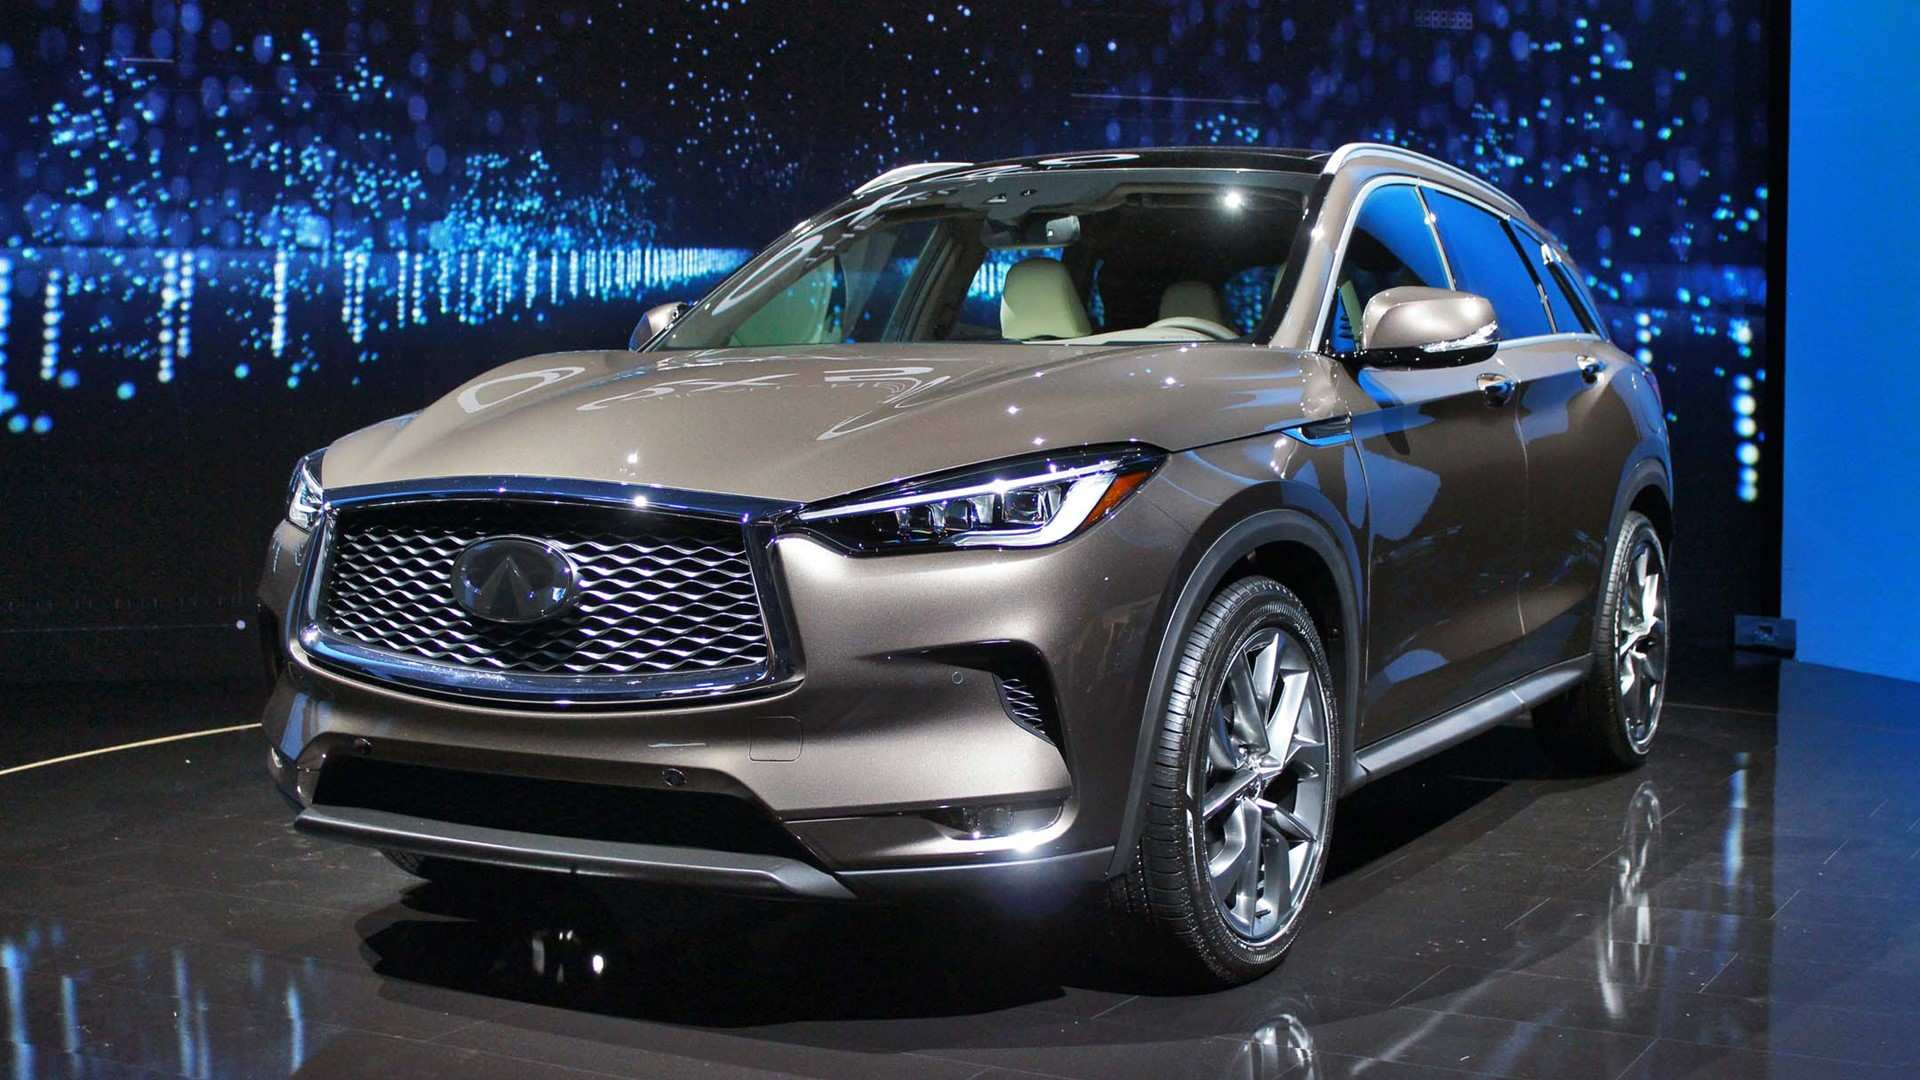 59 New The Infiniti Qx50 2019 Hybrid Concept Redesign And Review